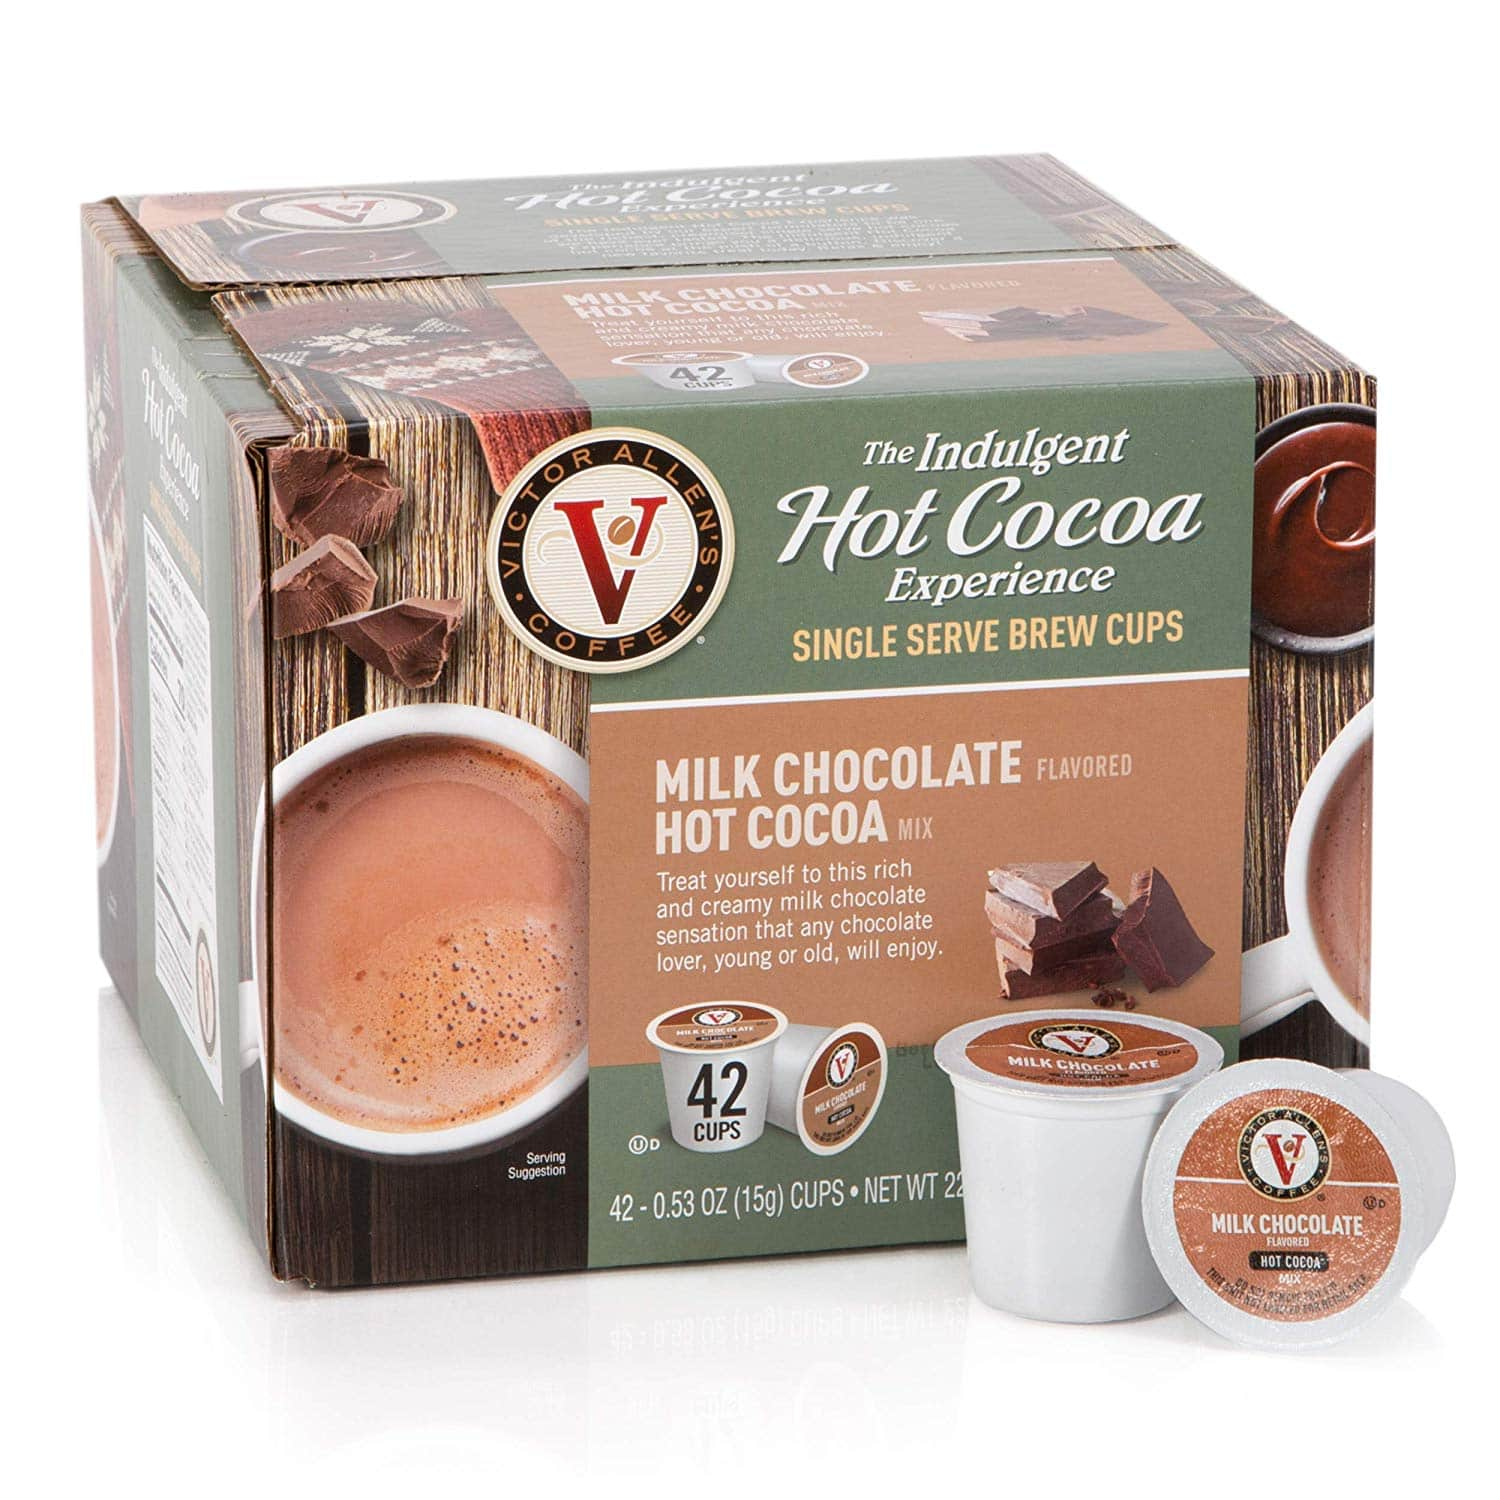 42-Ct. Victor Allen Coffee - (Milk Chocolate) Hot Cocoa Single Serve K-Cups $12.59 5% or $11.19 15% AC w/s&s